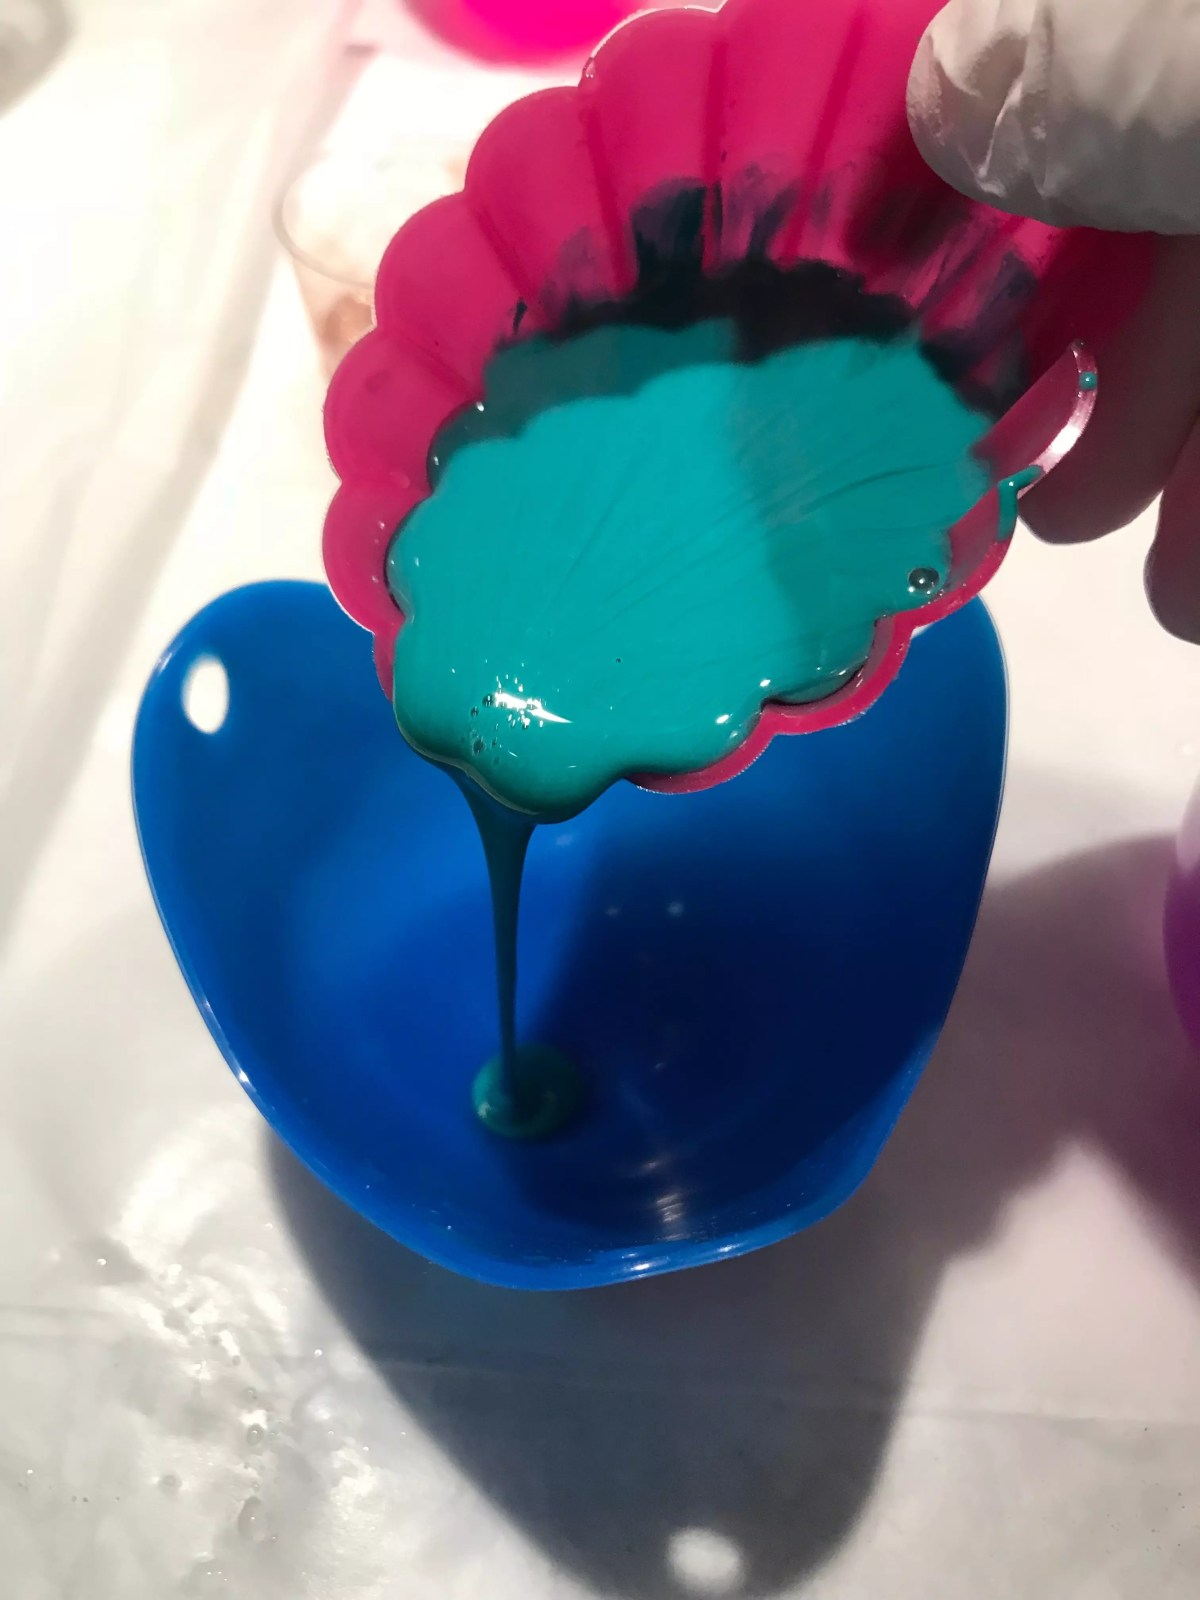 pouring resin into mold